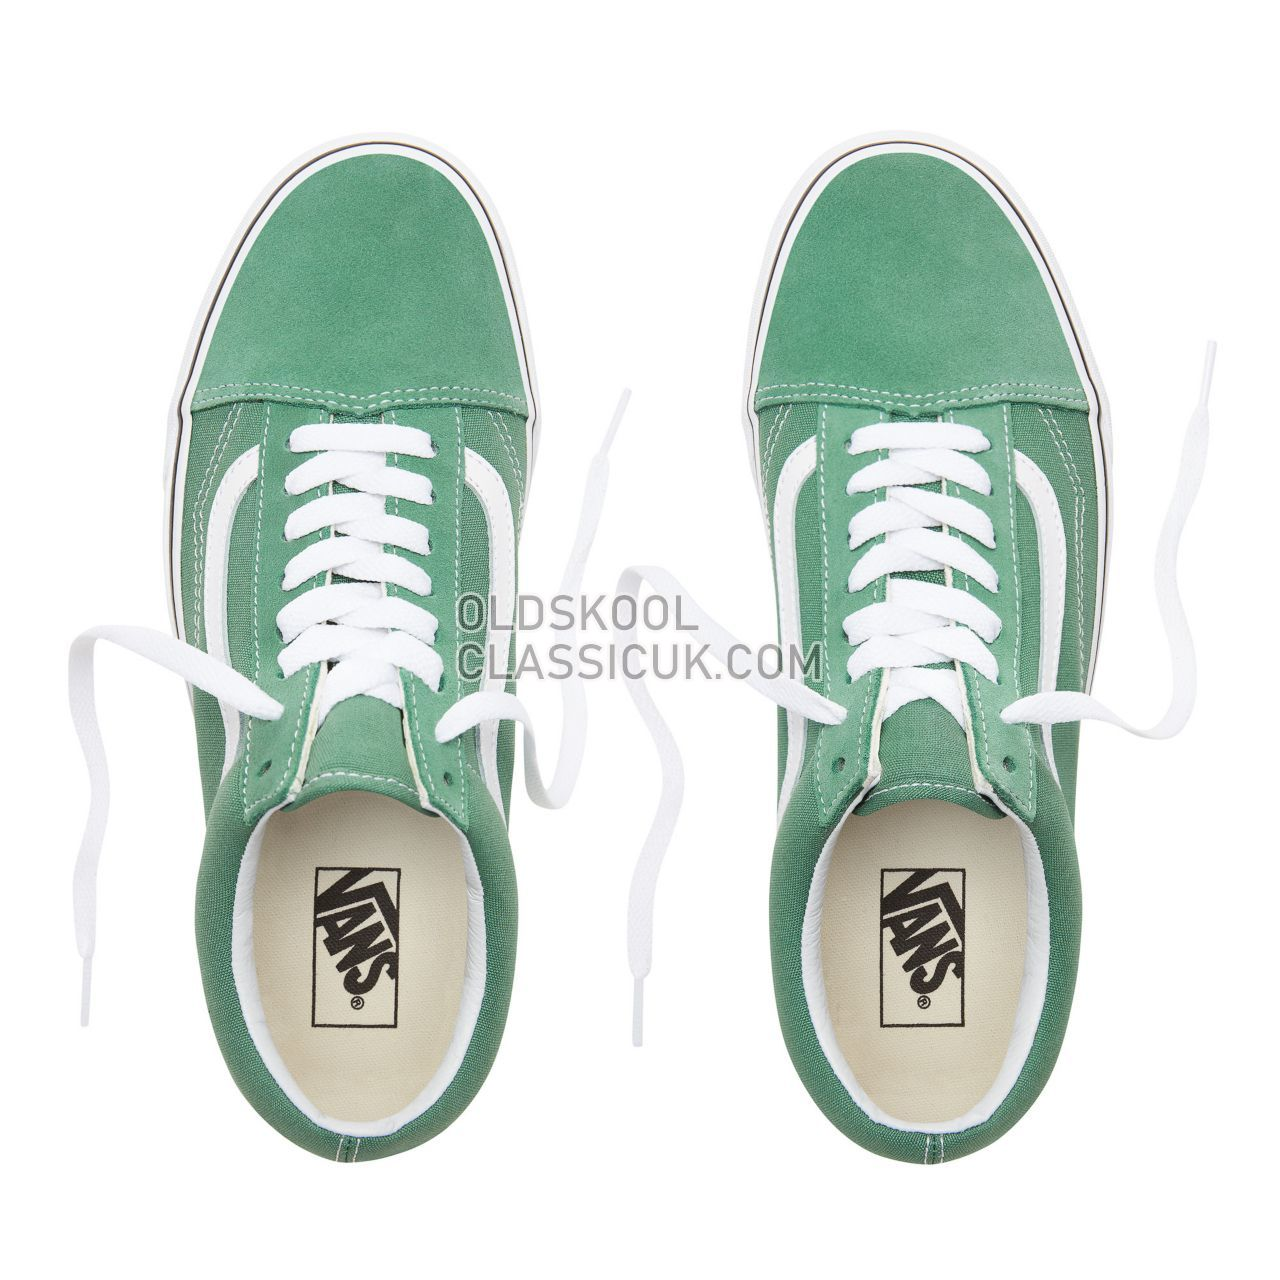 Vans Old Skool Sneakers Mens Womens Unisex Deep Grass Green/True White VN0A38G1UKV Shoes